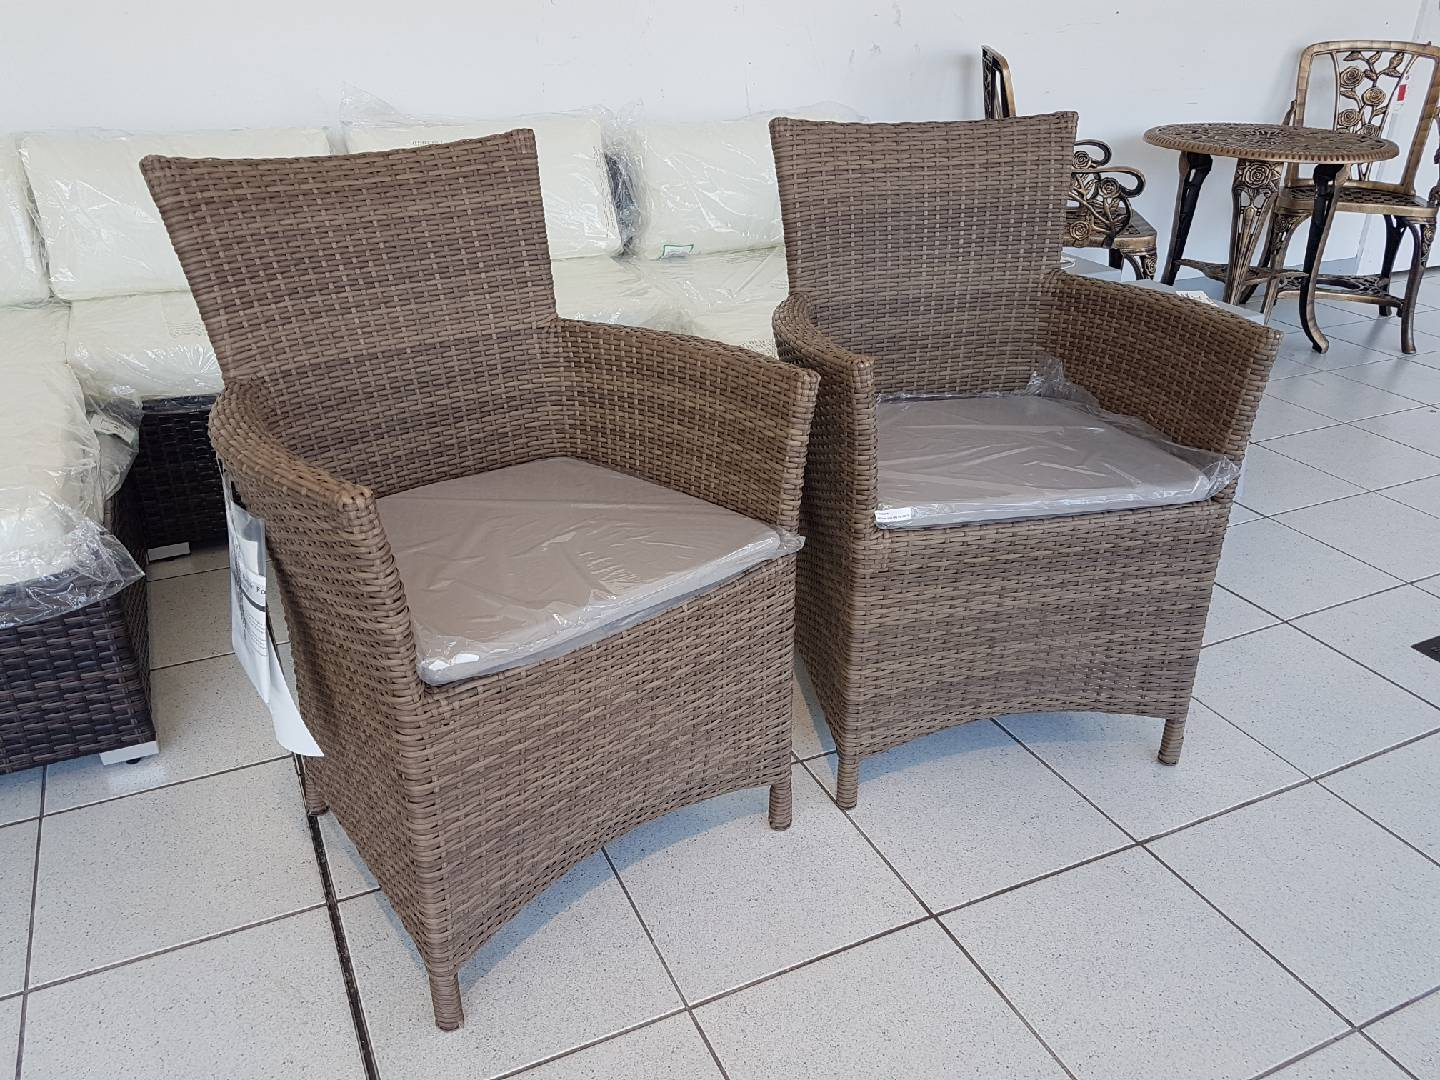 23918 - RATTAN CHAIRS WITH CUSHION Europe